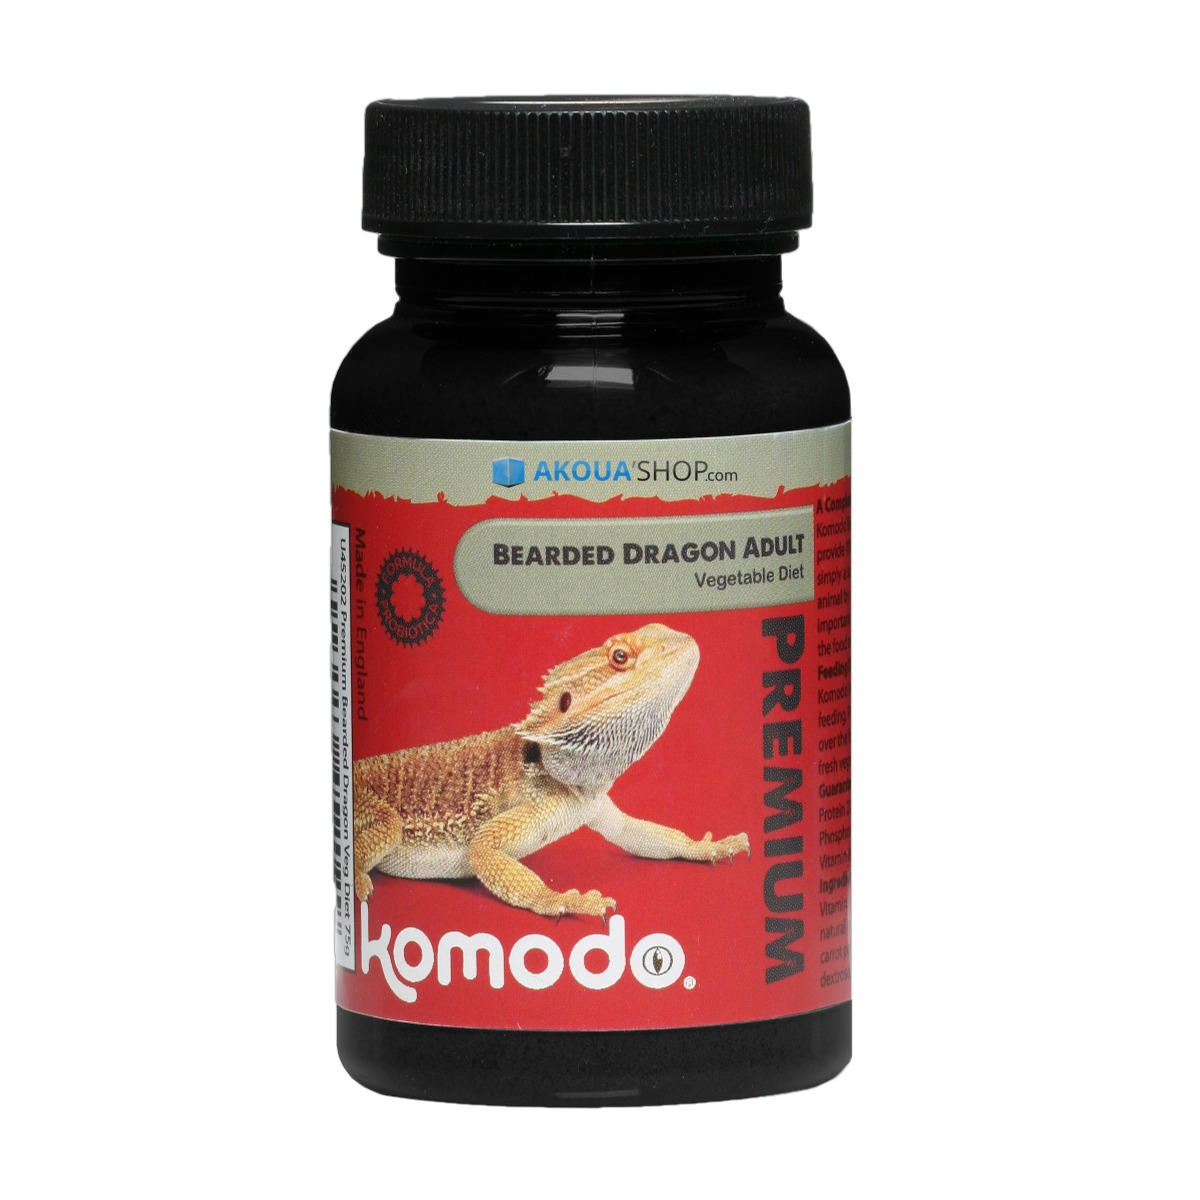 komodo Premium Bearded Dragon Vegi Adult Diet 75g